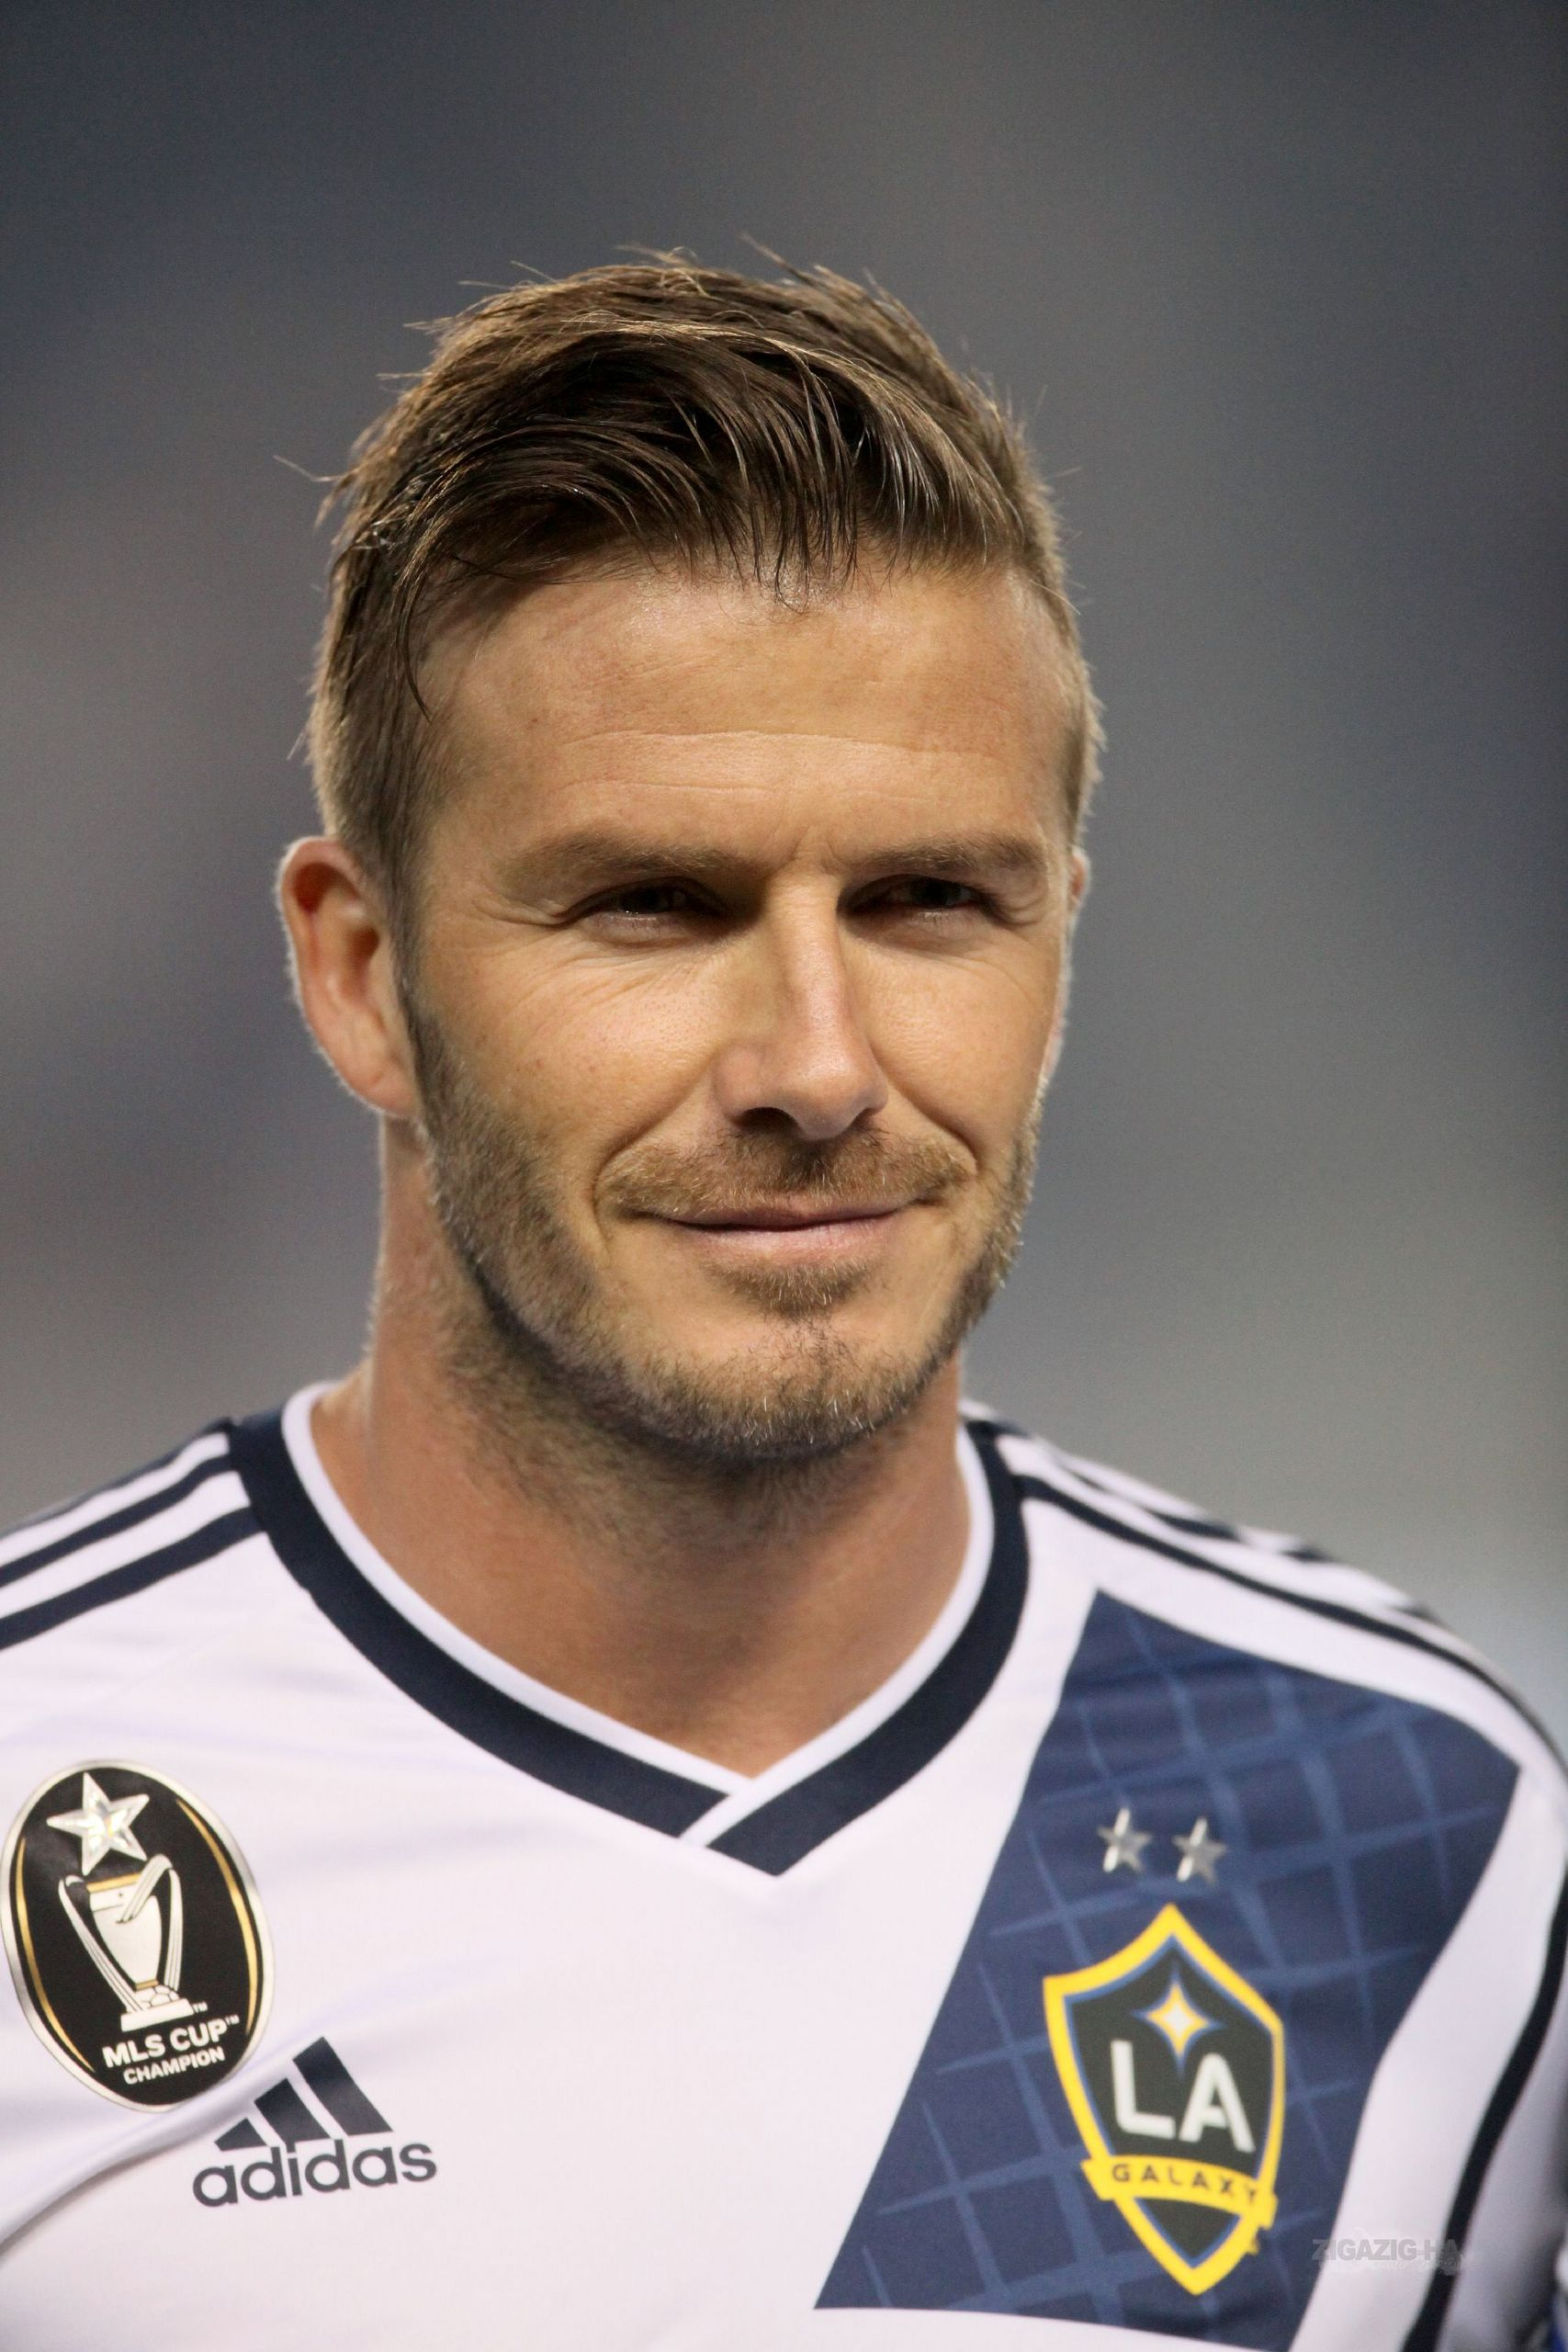 David Beckham New Hairstyle Tips & Suggestions